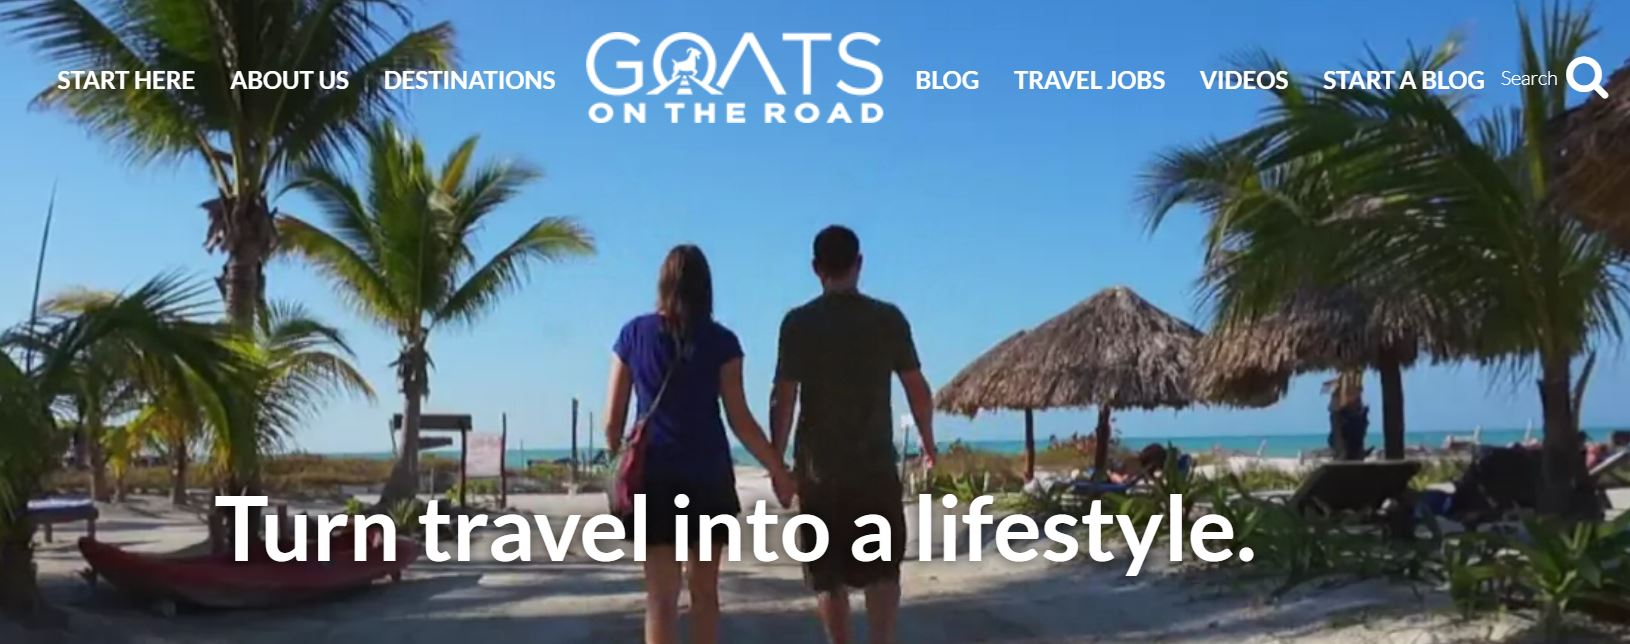 Goats on the Road how to prevent tourist scams